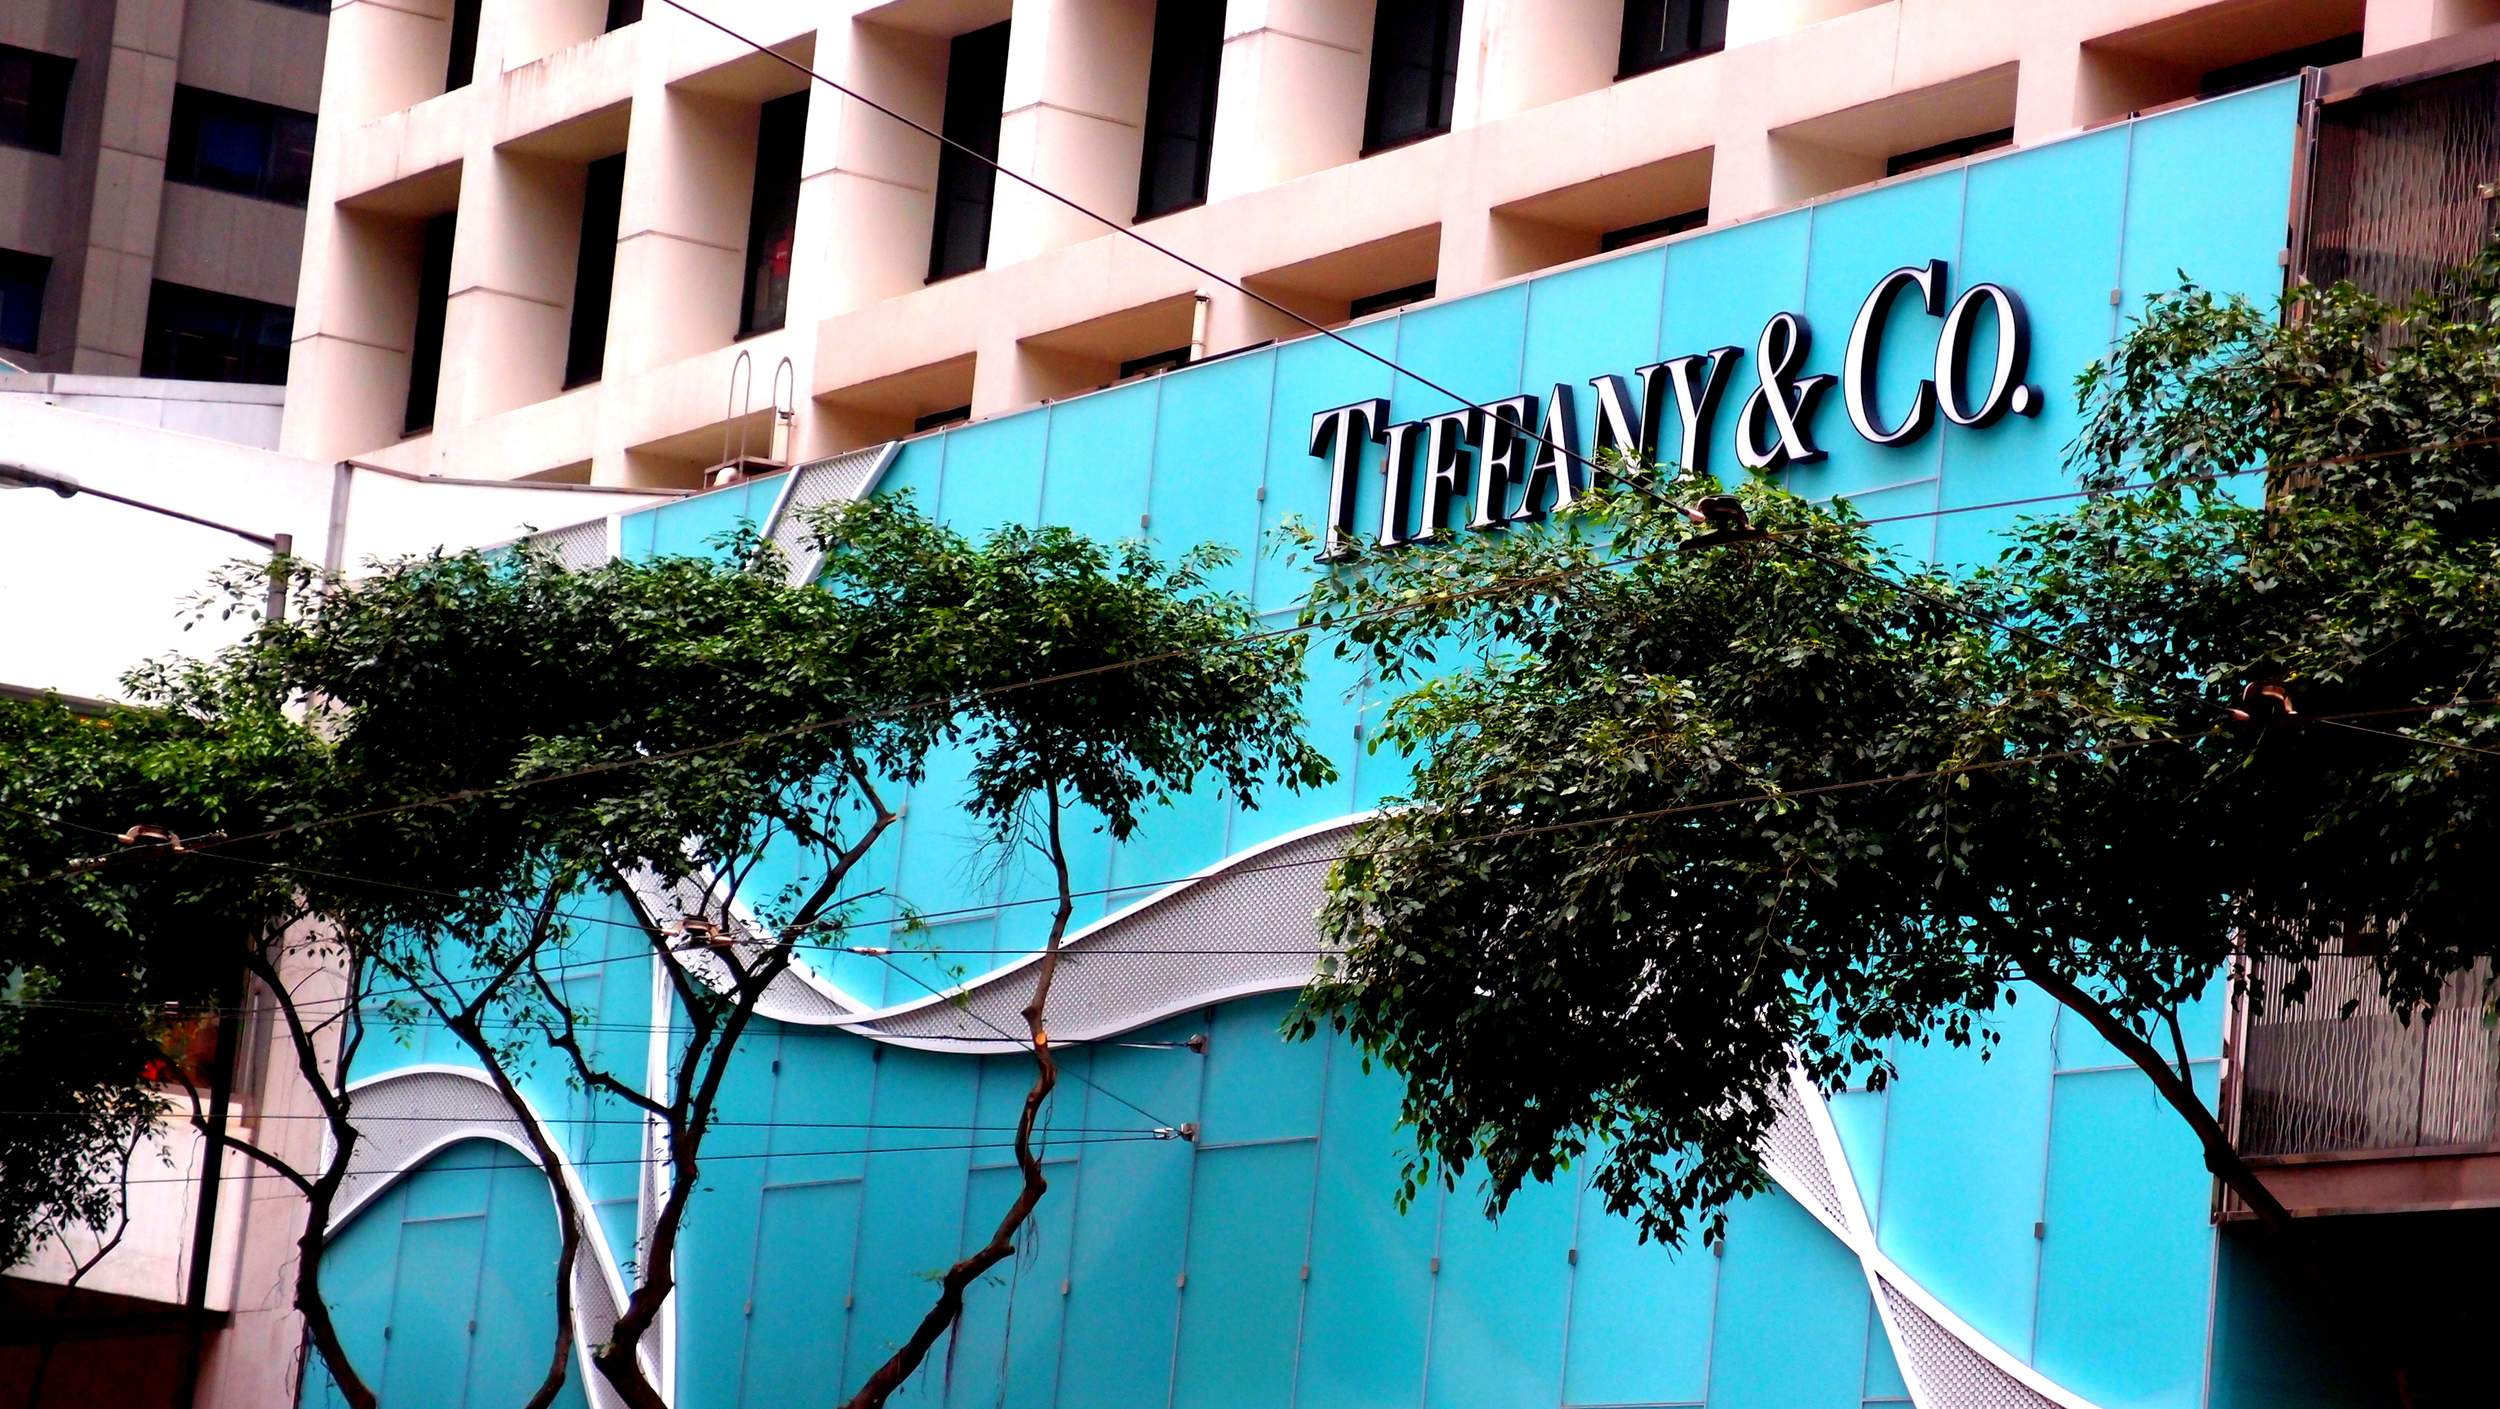 They have spent what seems to be a year making this sign!! Most cities have one Tiffany store, we have 6!